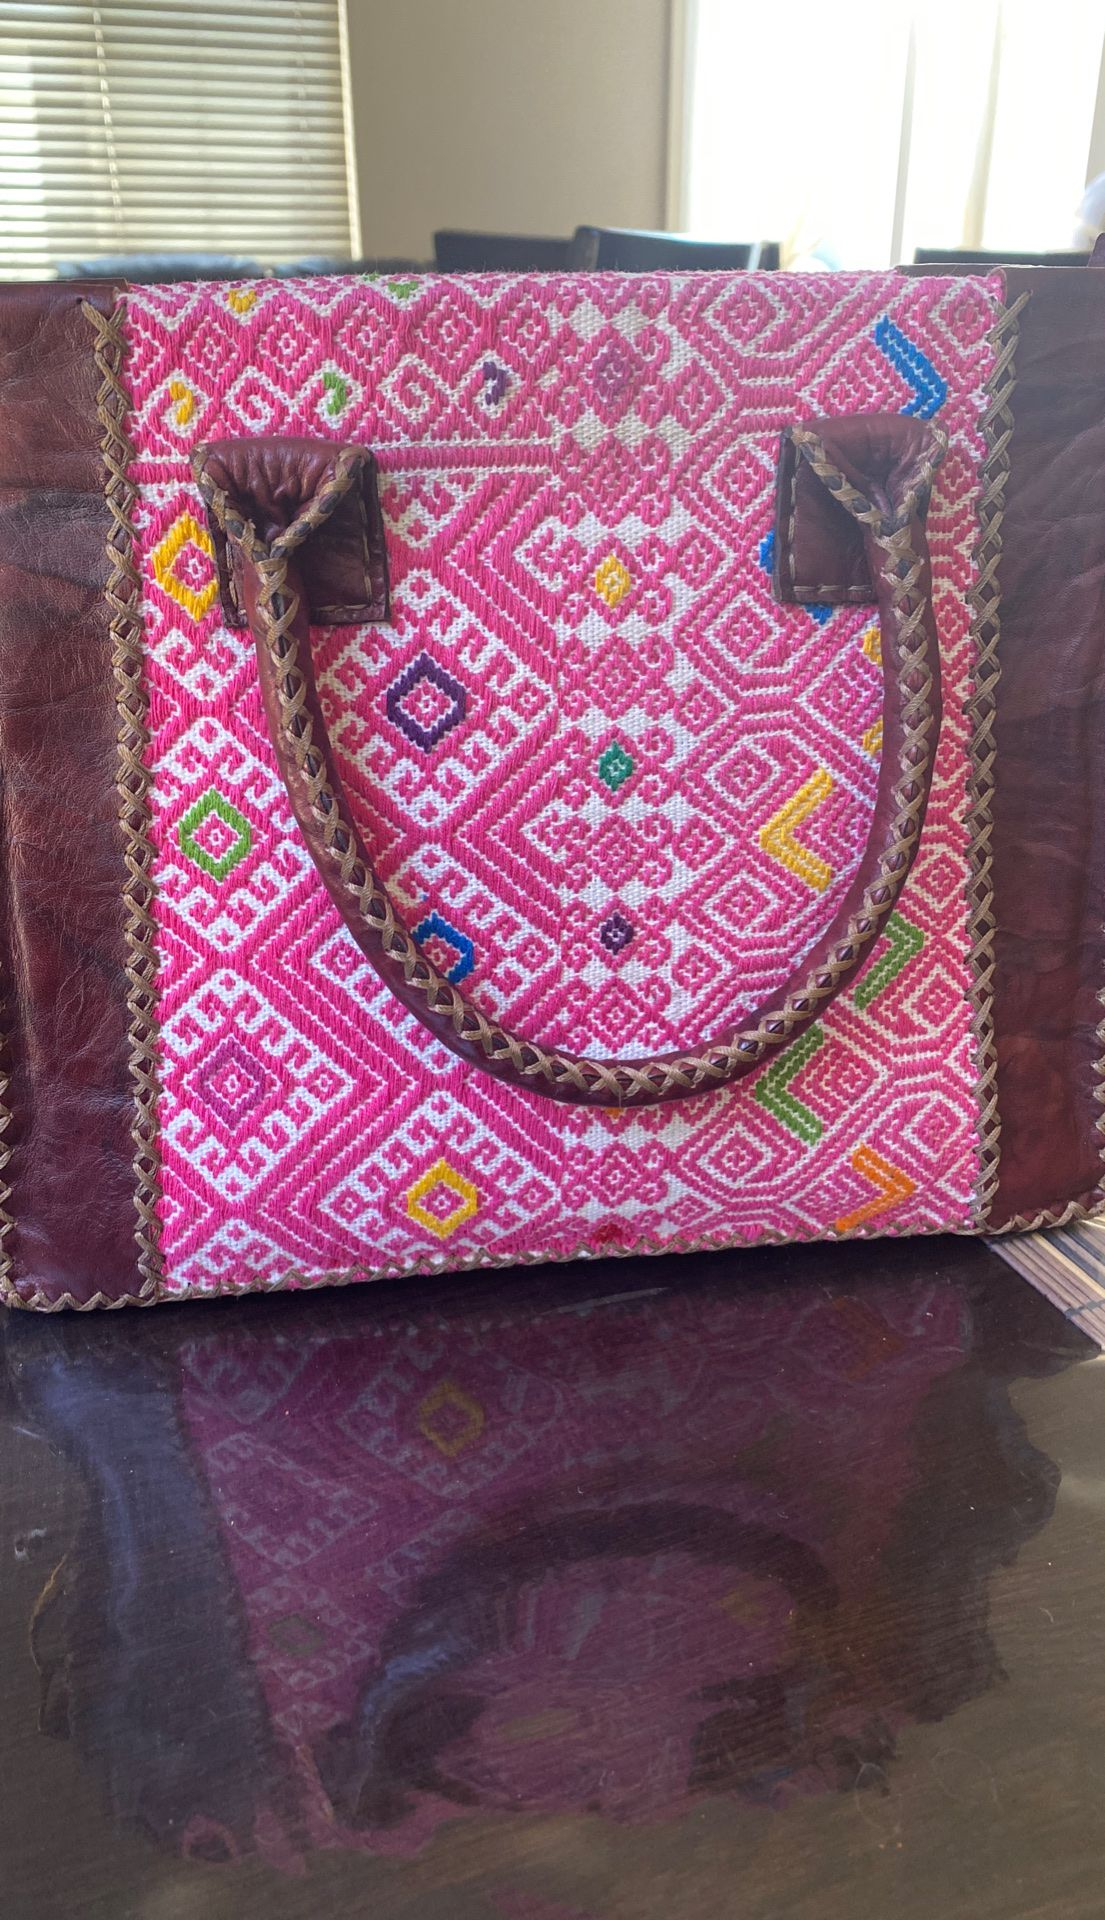 $100 handmade all leather pink and burgundy purse!